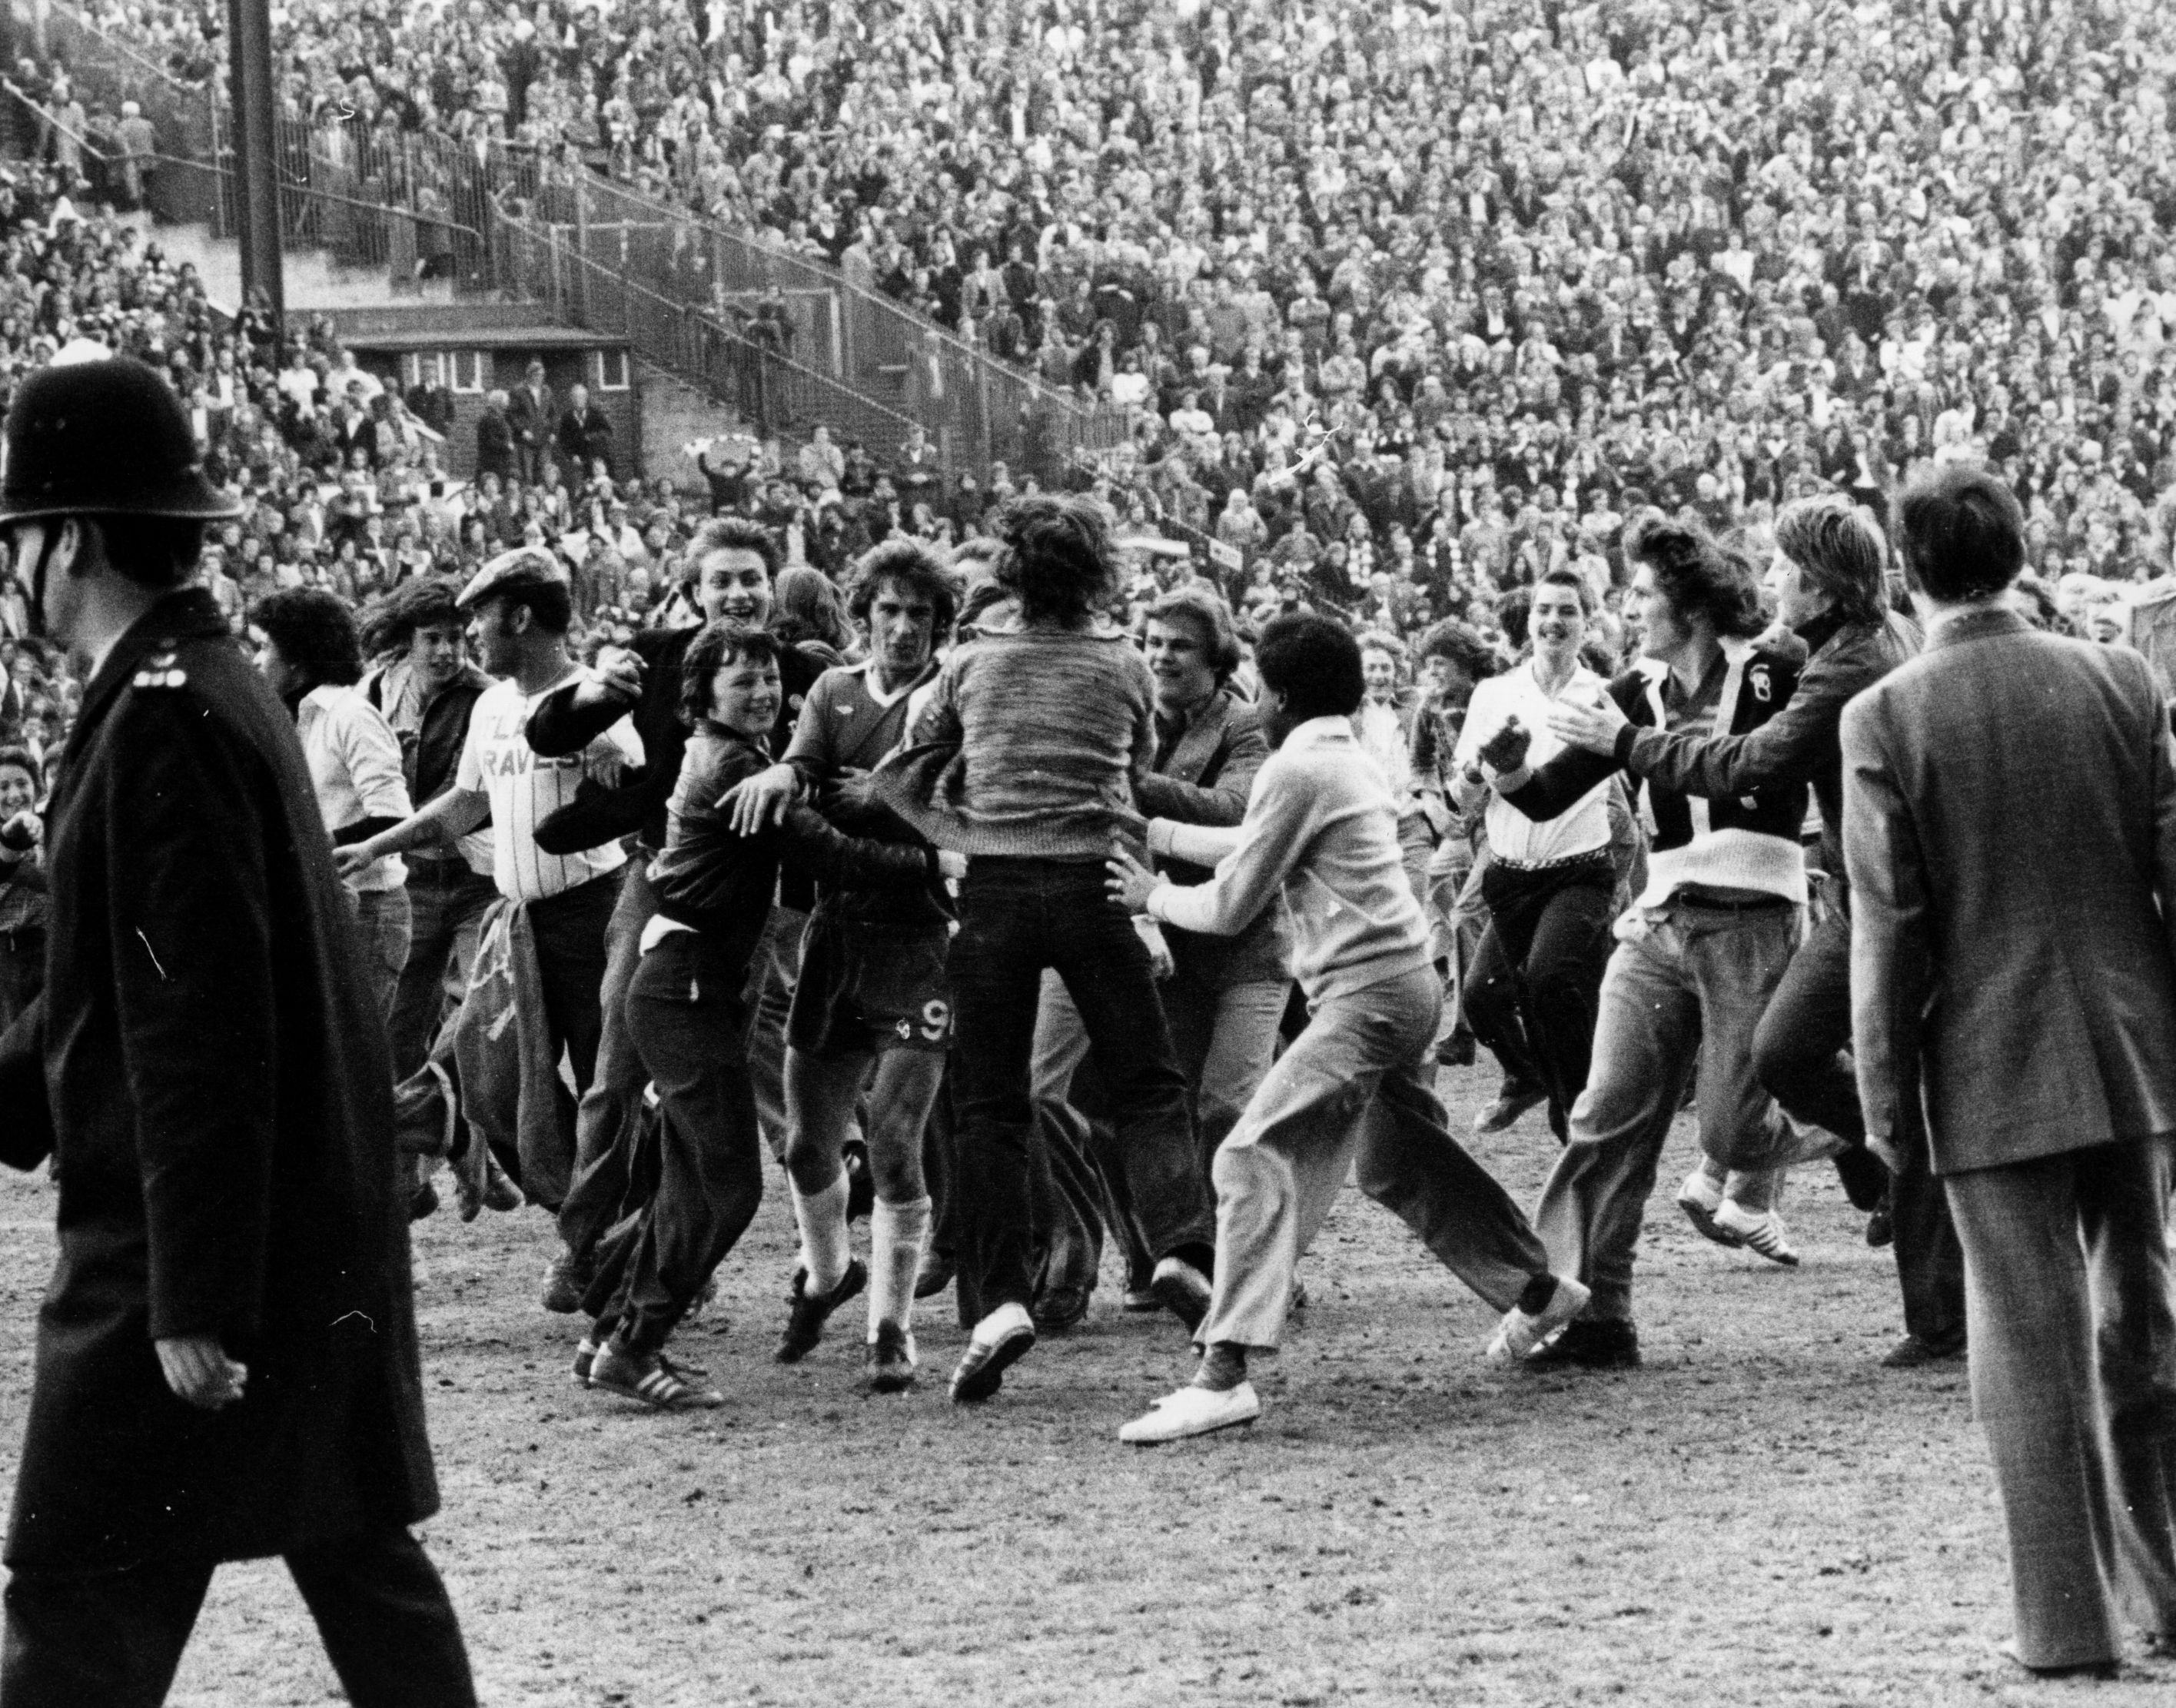 circa 1975: Sheffield United fans mob Steve Finneston as he tries to leave the football pitch. (Photo by Hulton Archive/Getty Images)